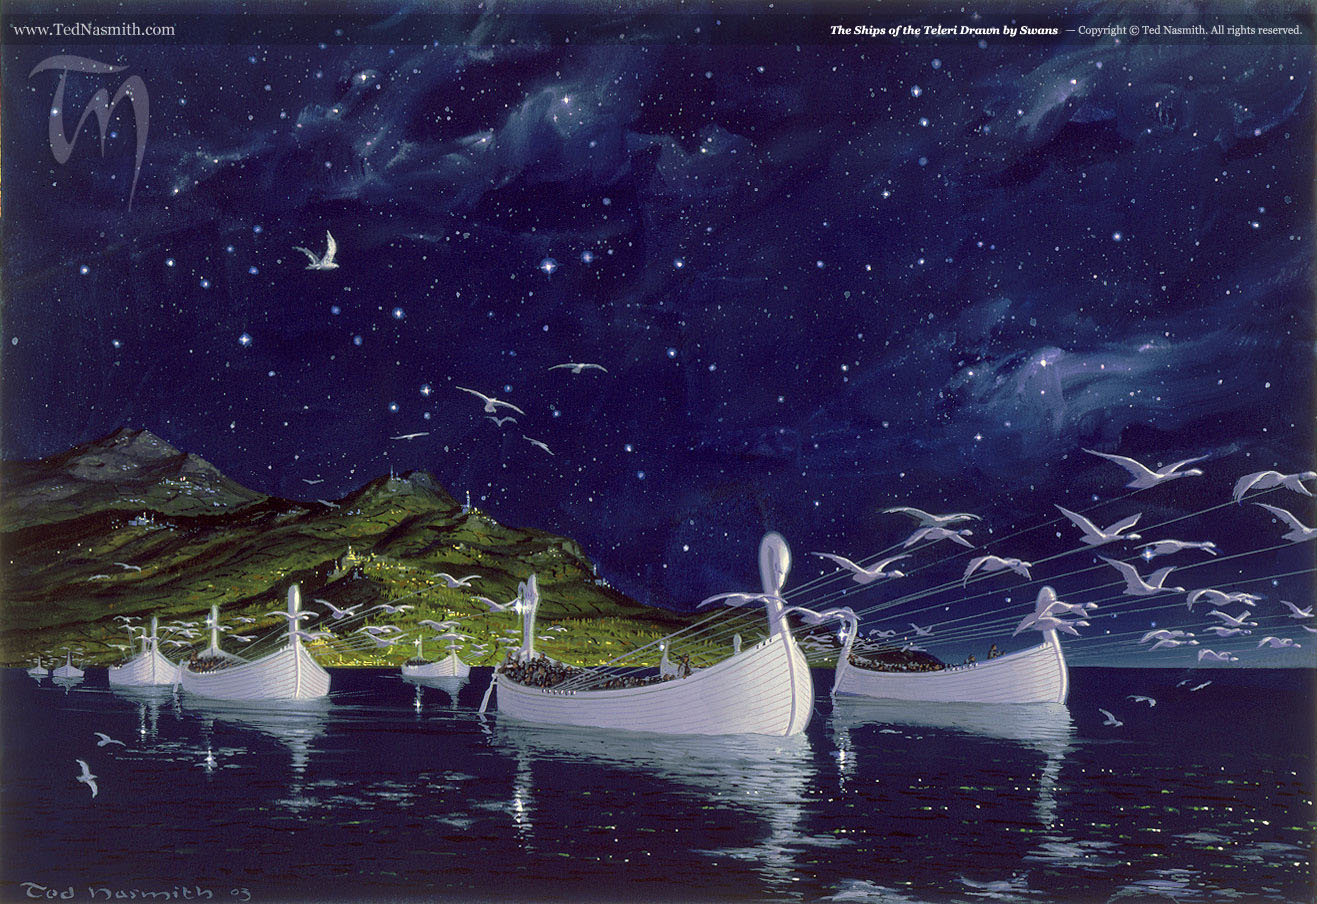 The Silmarillion Backgrounds, Compatible - PC, Mobile, Gadgets| 1317x904 px